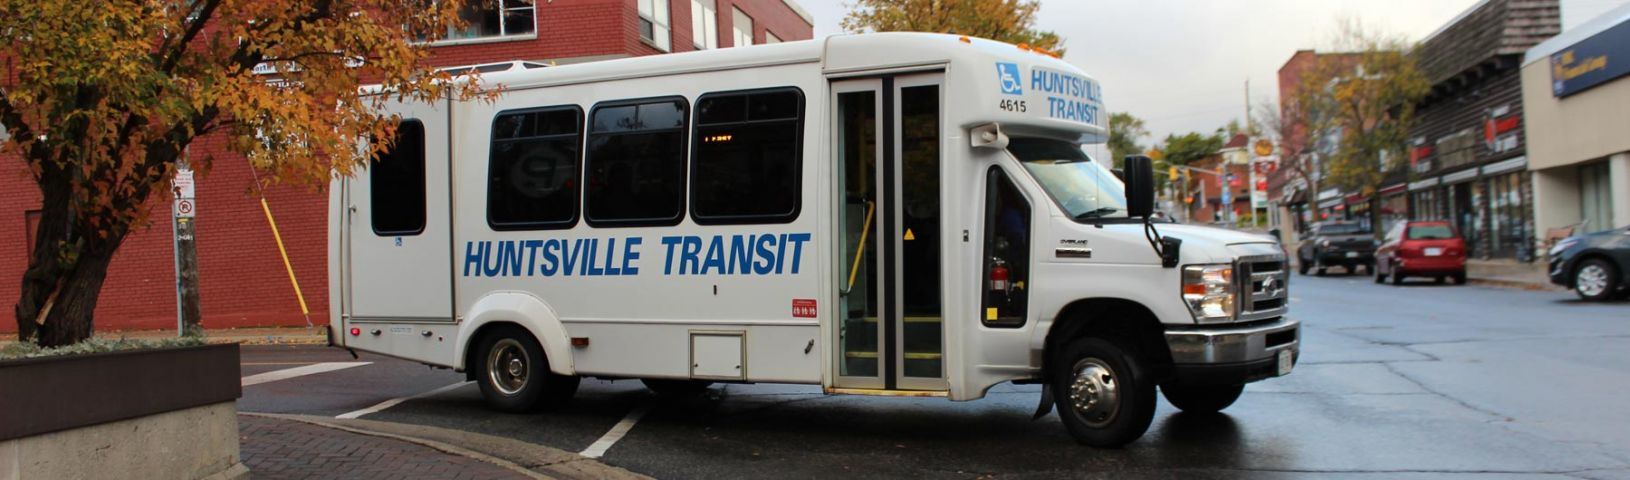 New Smart Card System Coming to Huntsville Transit